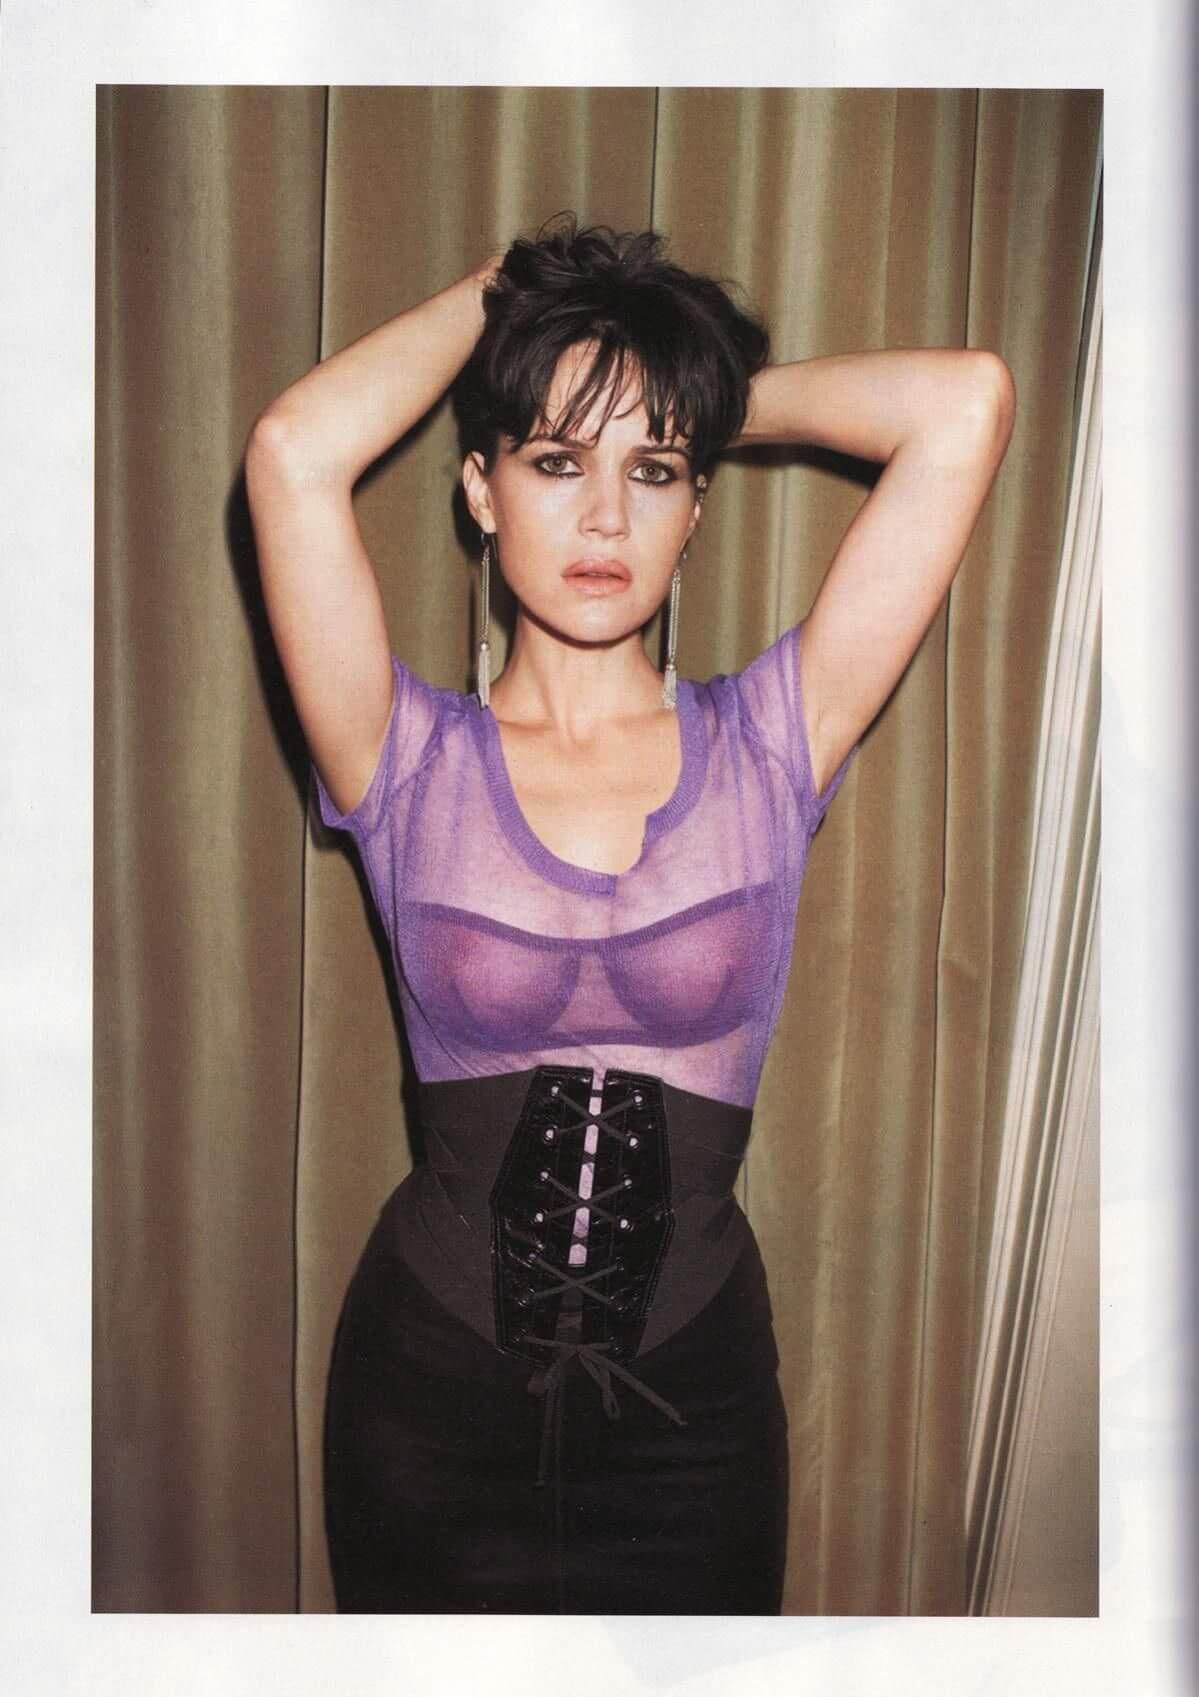 49 Hot Pictures Of Carla Gugino Will Make You Drool For Her-4102